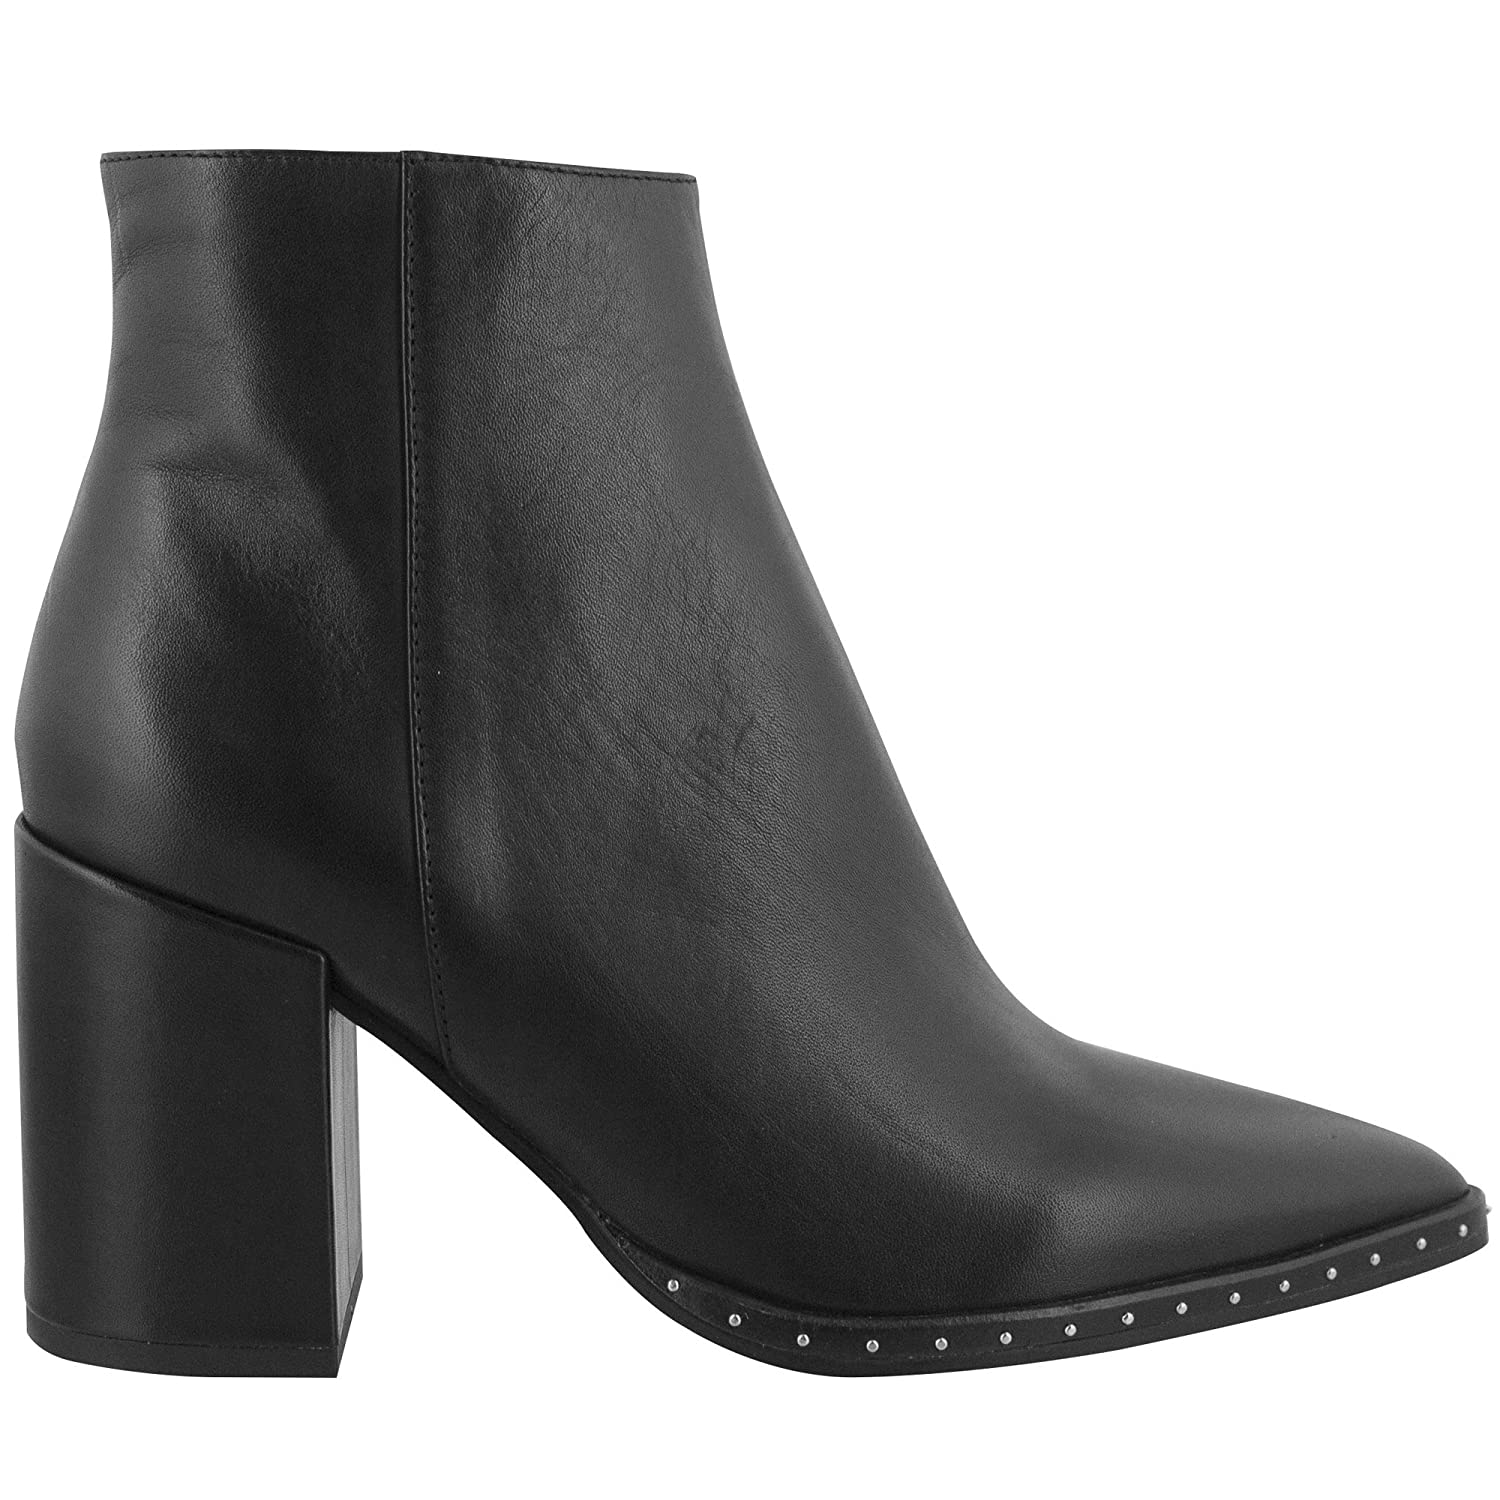 Tony Bianco Bailey Leather Ankle Boots for Women - with Pointed Toe & Silver Stud Detailing B075ZQKJNB 7.5 B(M) US|Black Albany